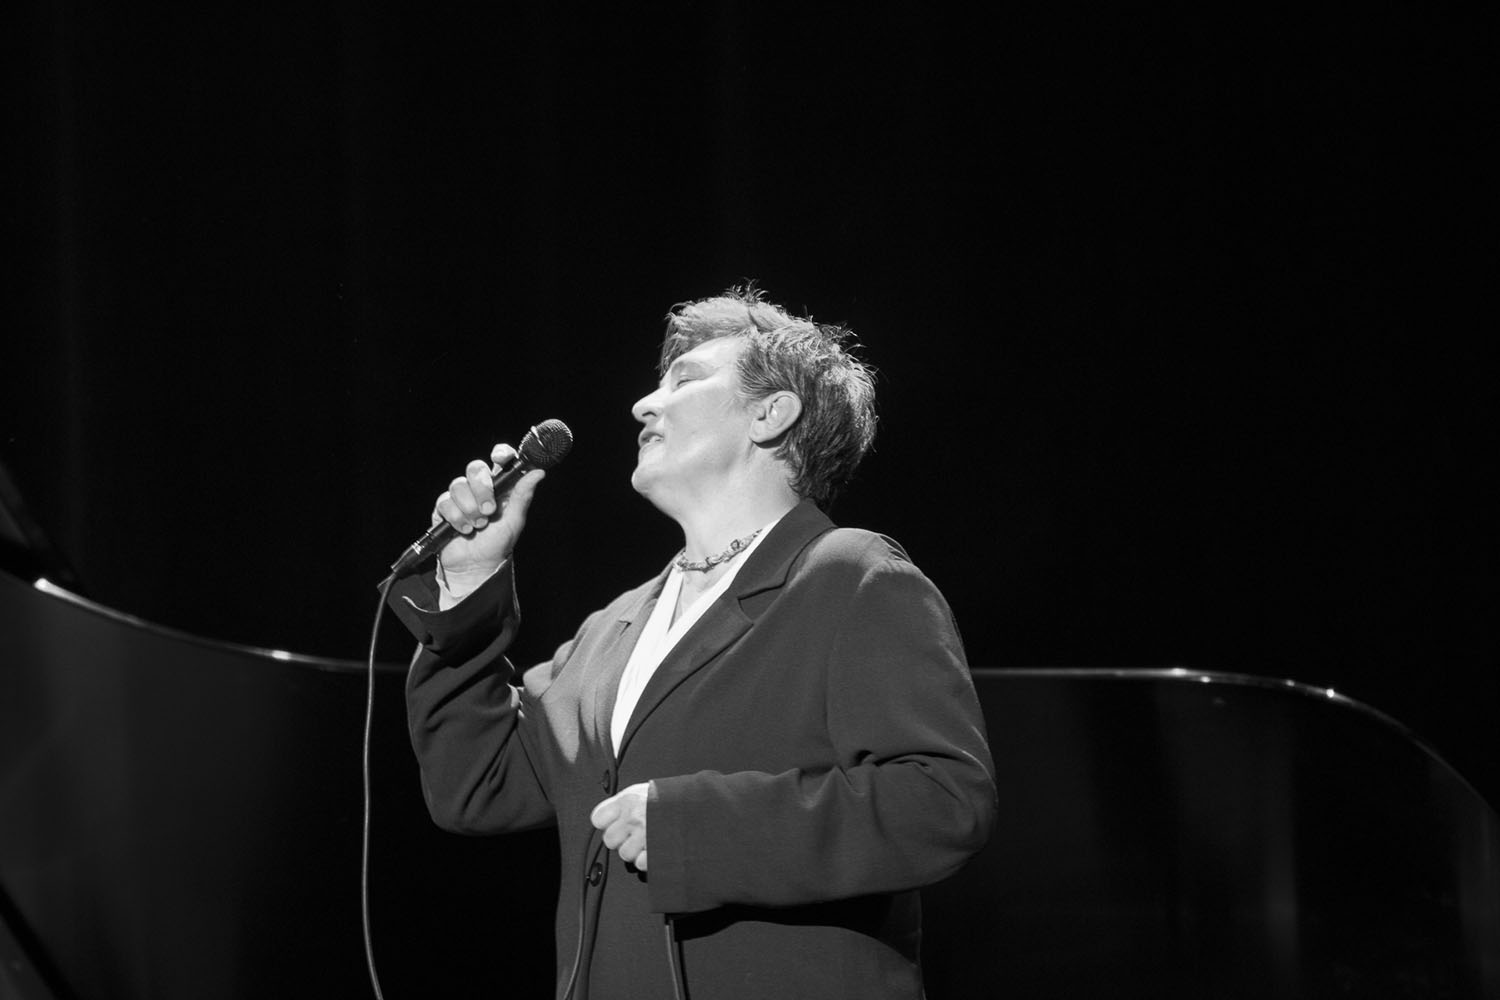 Yes, k.d. lang really does photograph this well.